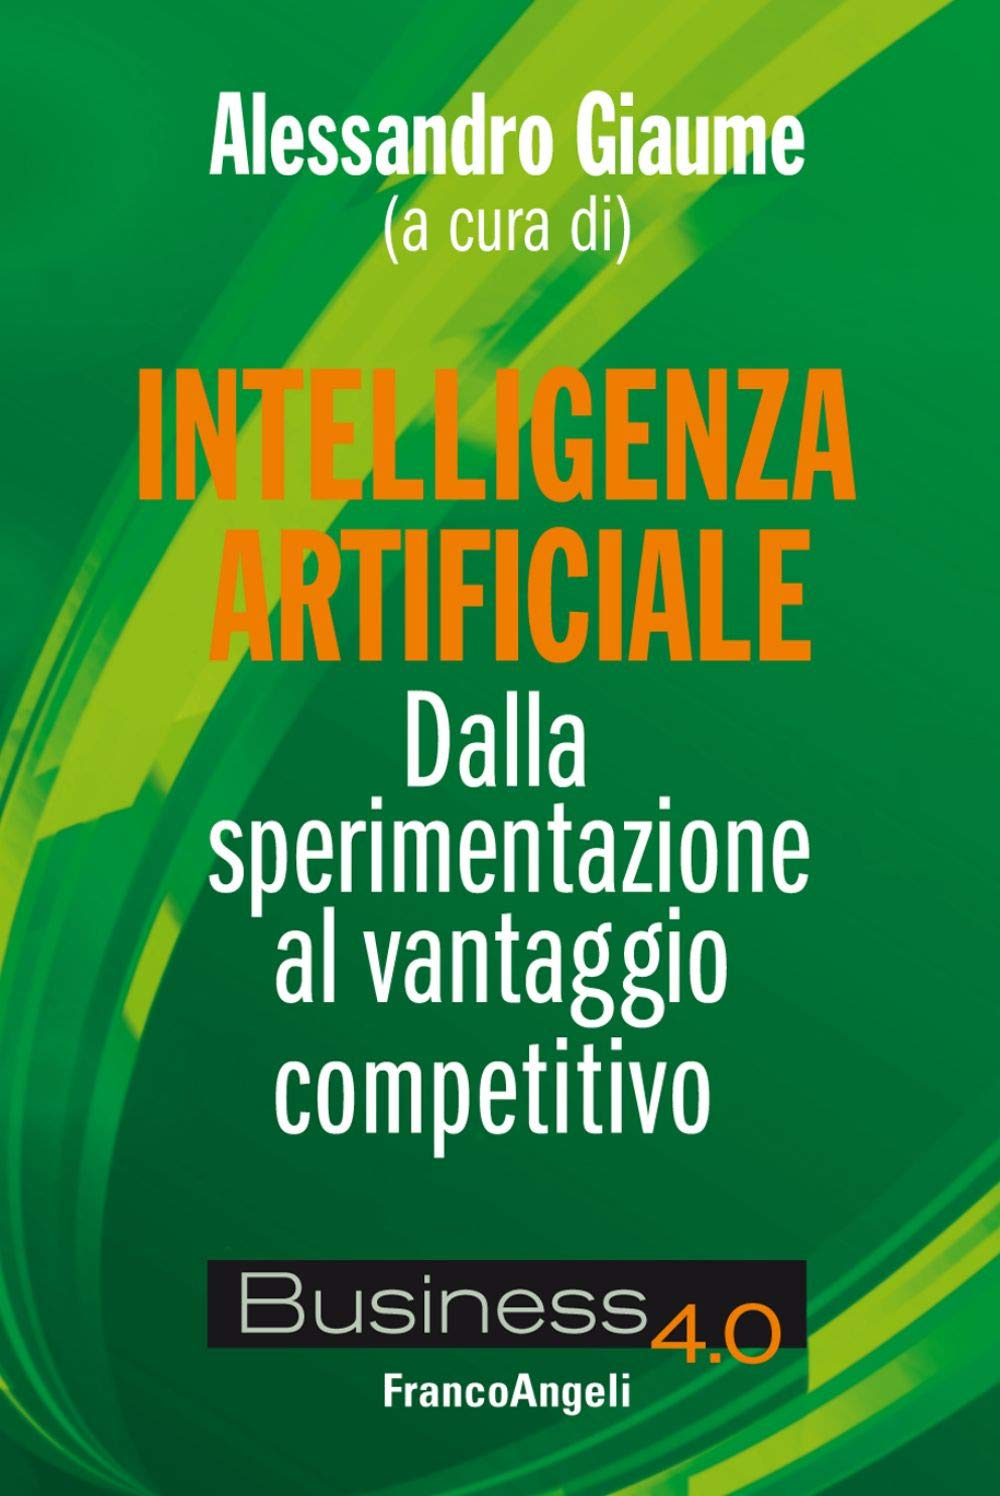 intelligenzaartificiale